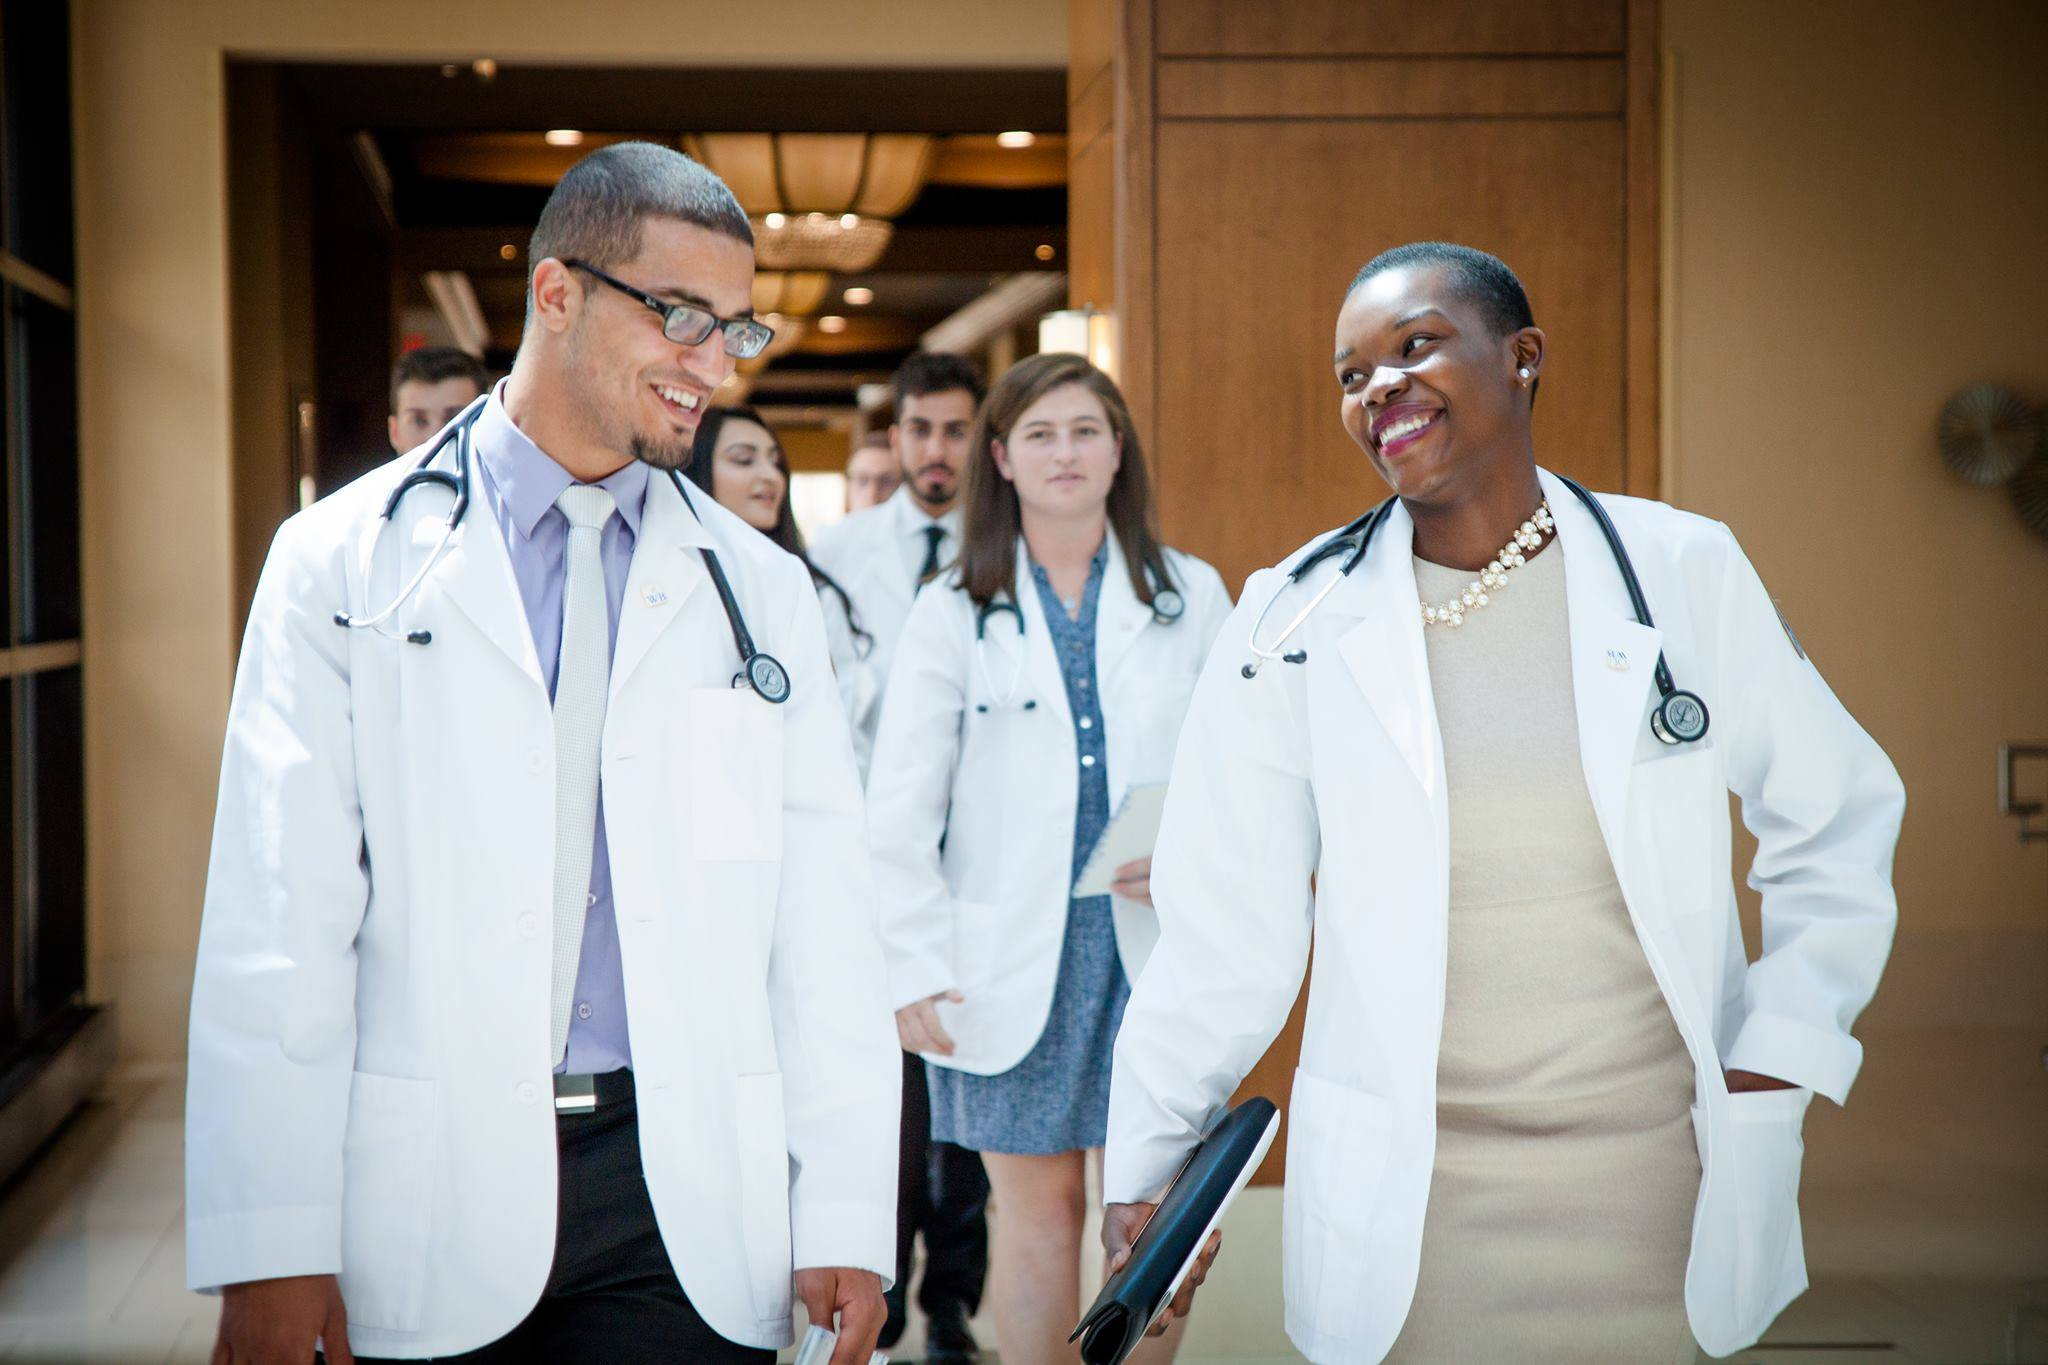 Two students walk out of the White Coat ceremony wearing their coats.